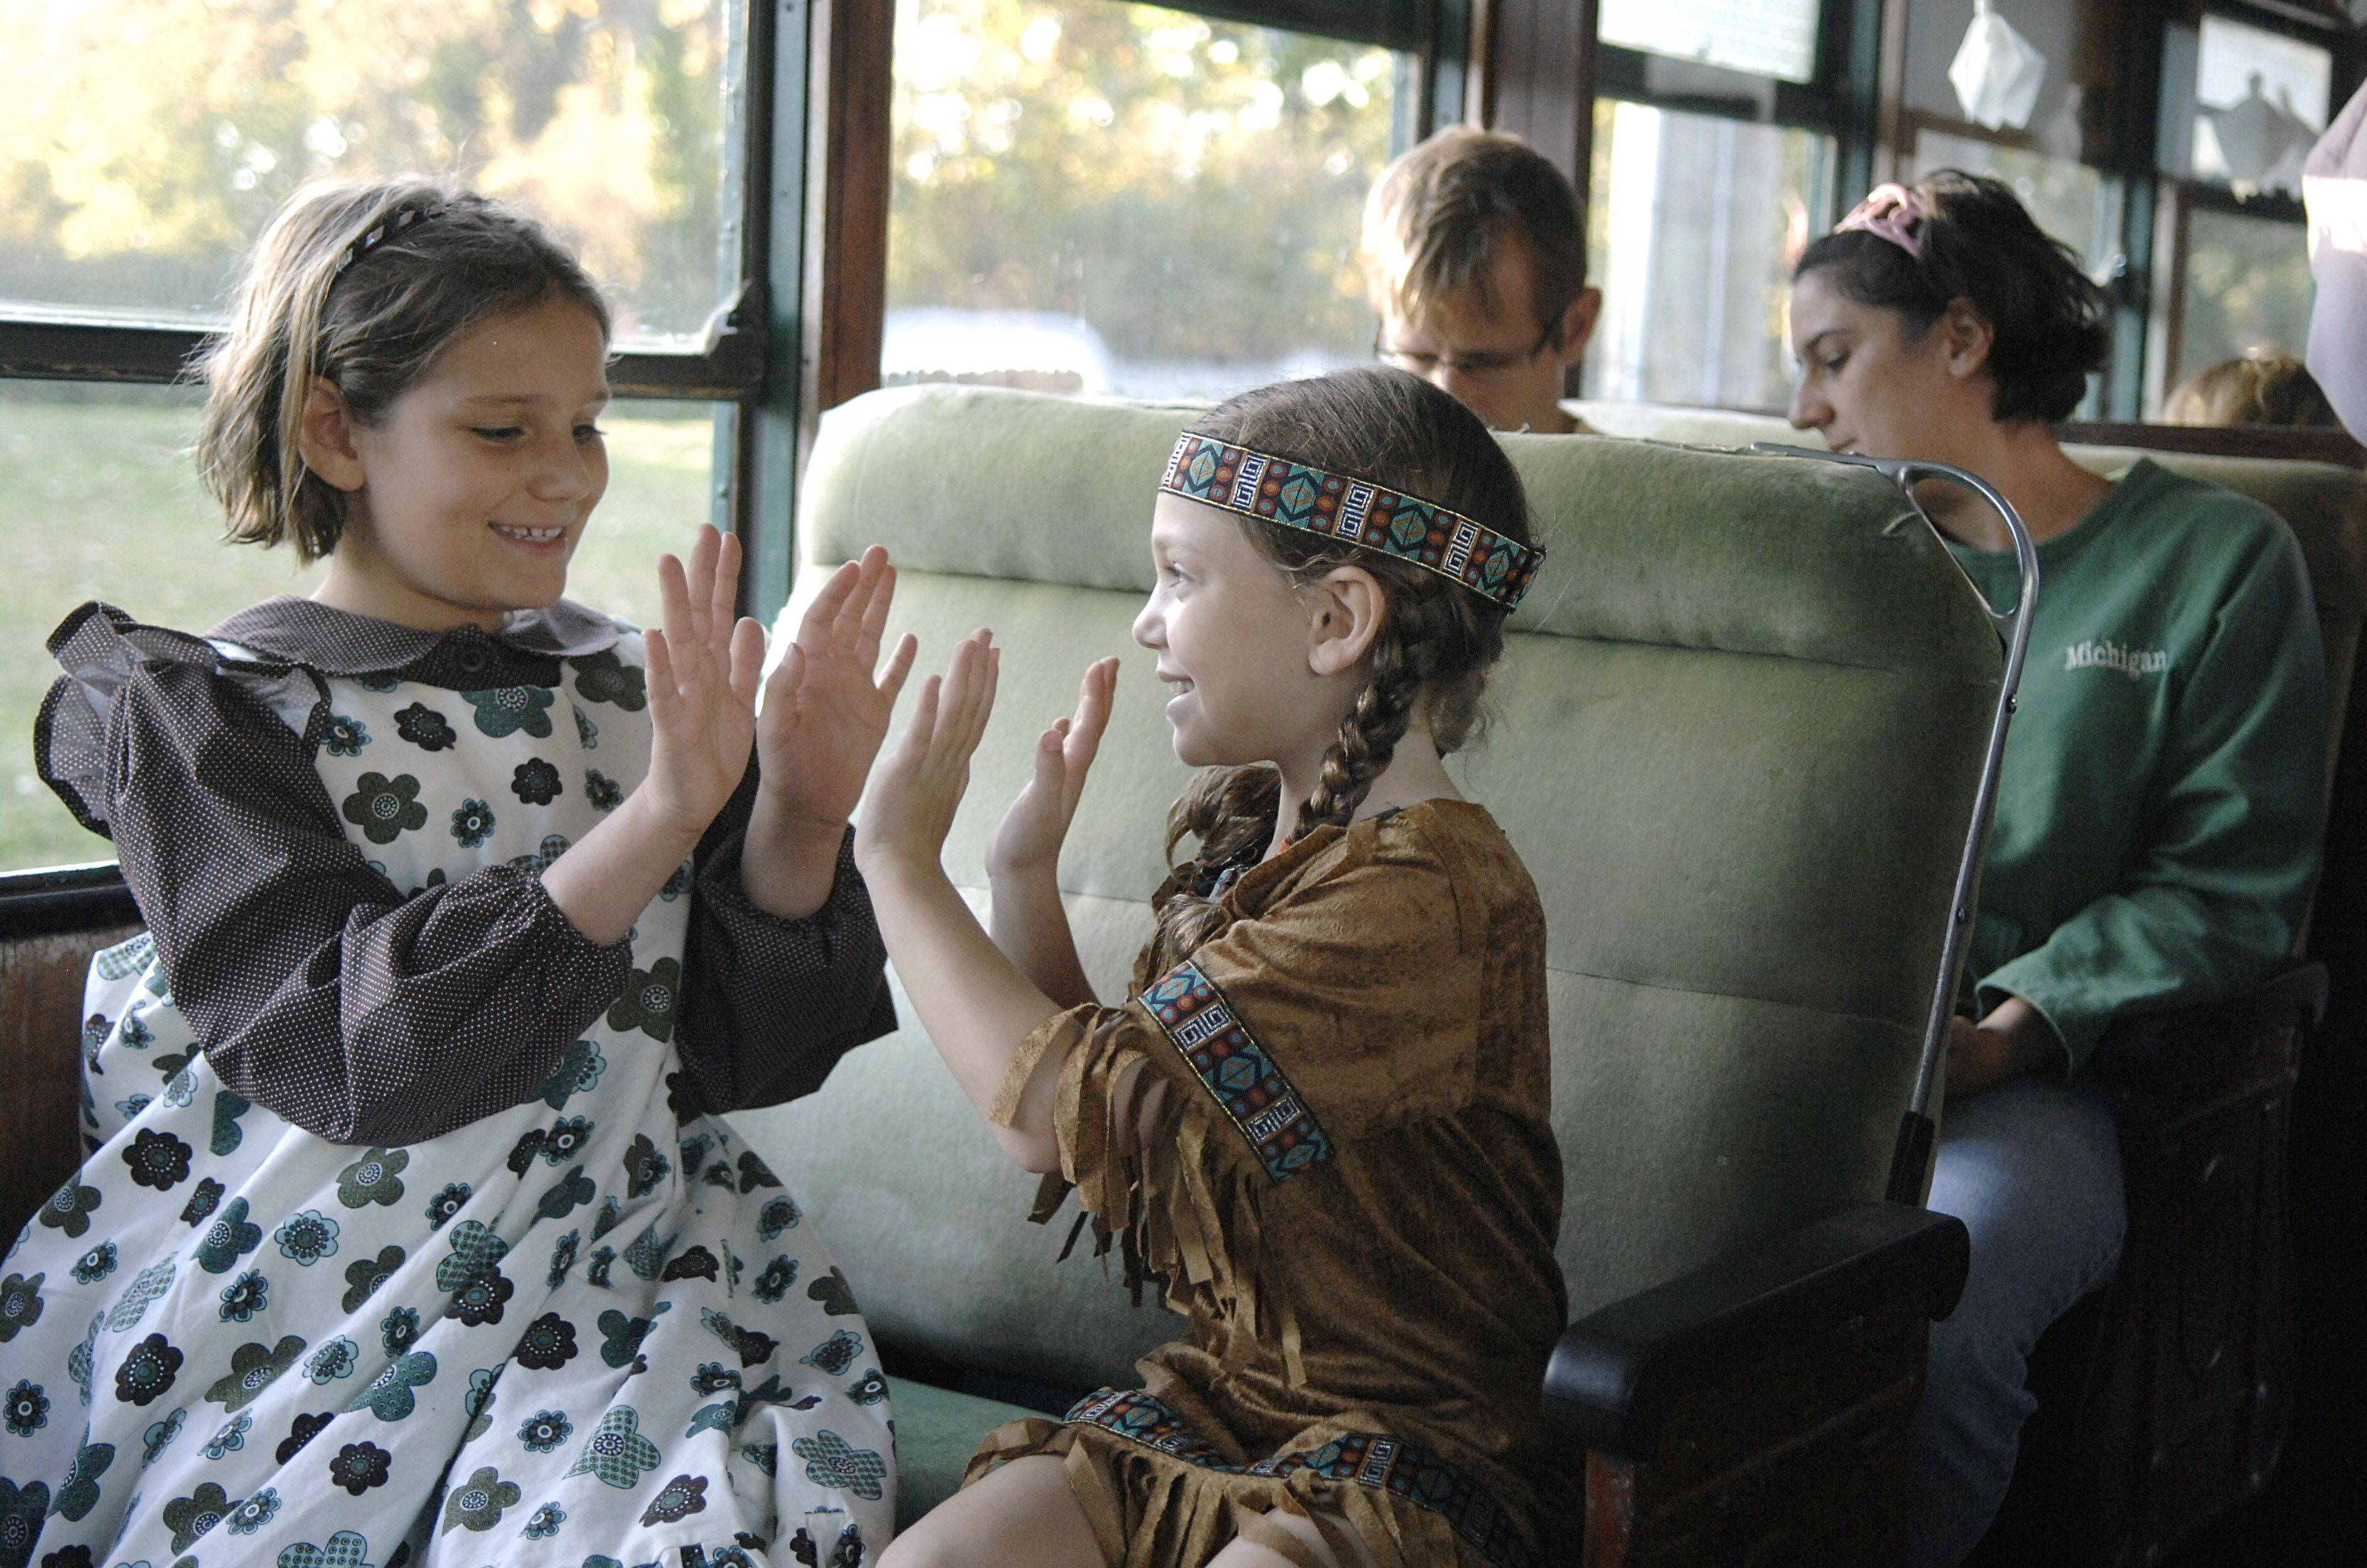 Isabella Rechtin and Ilana Greenstein, both 8 from Winnetka, play a game before the Halloween Hiawatha Ghost Story Train takes off from the Fox River Trolley Museum in South Elgin on Saturday evening, October 16. The train took passengers to the end of the rail line where they were told ghost stories around a campfire.